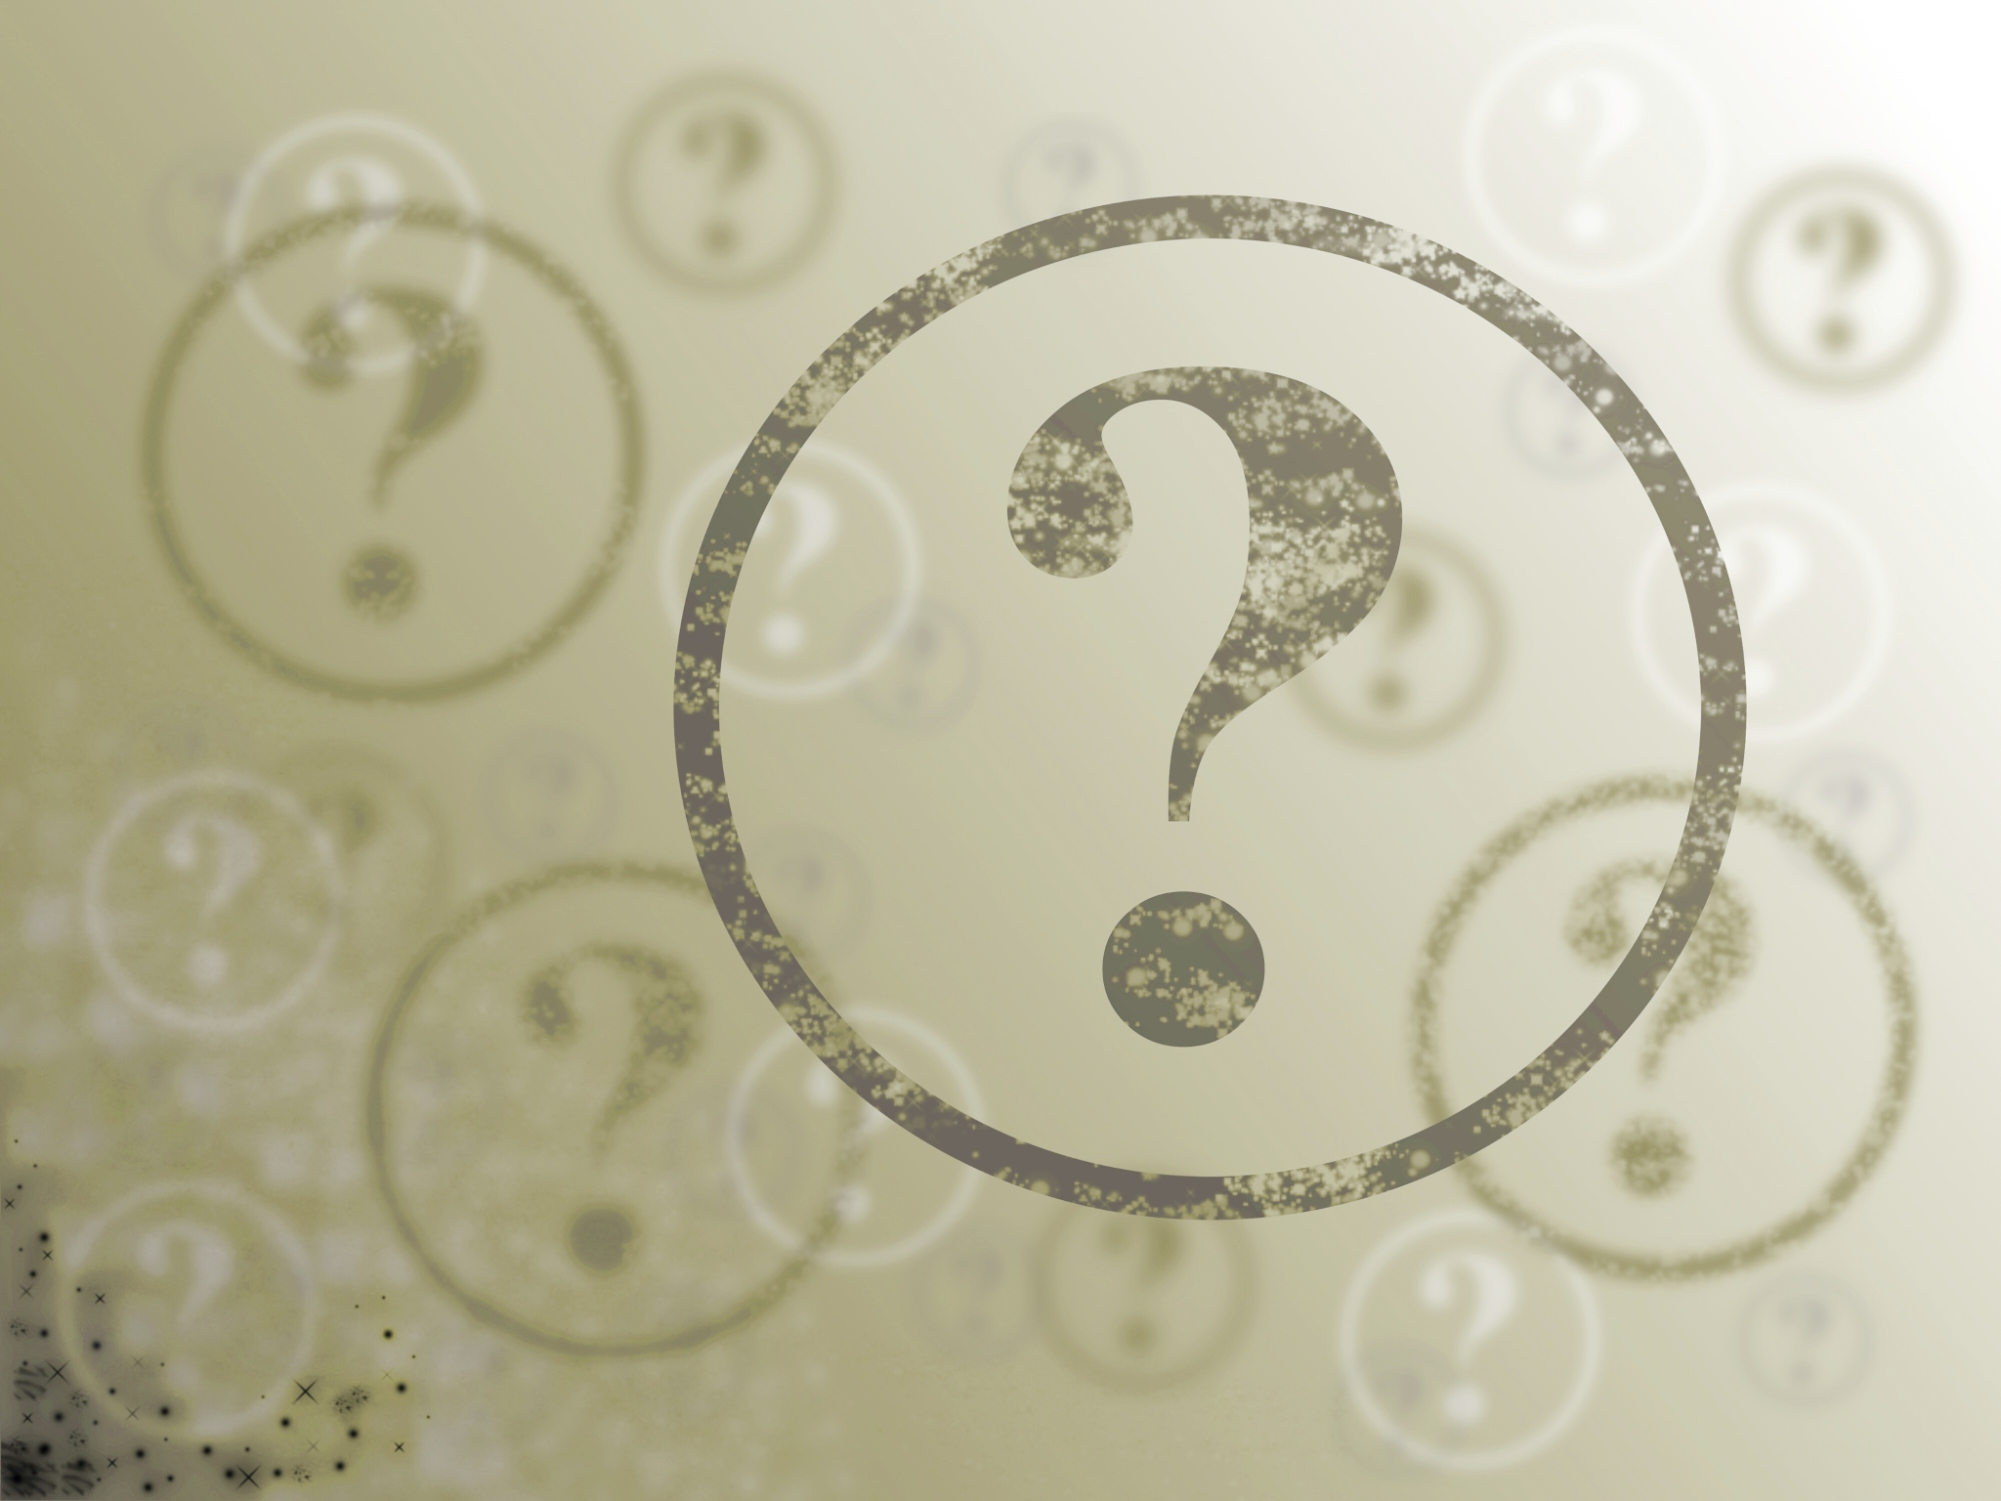 7 Questions Every Kidmin Leader Needs To Ask Themselves To Grow